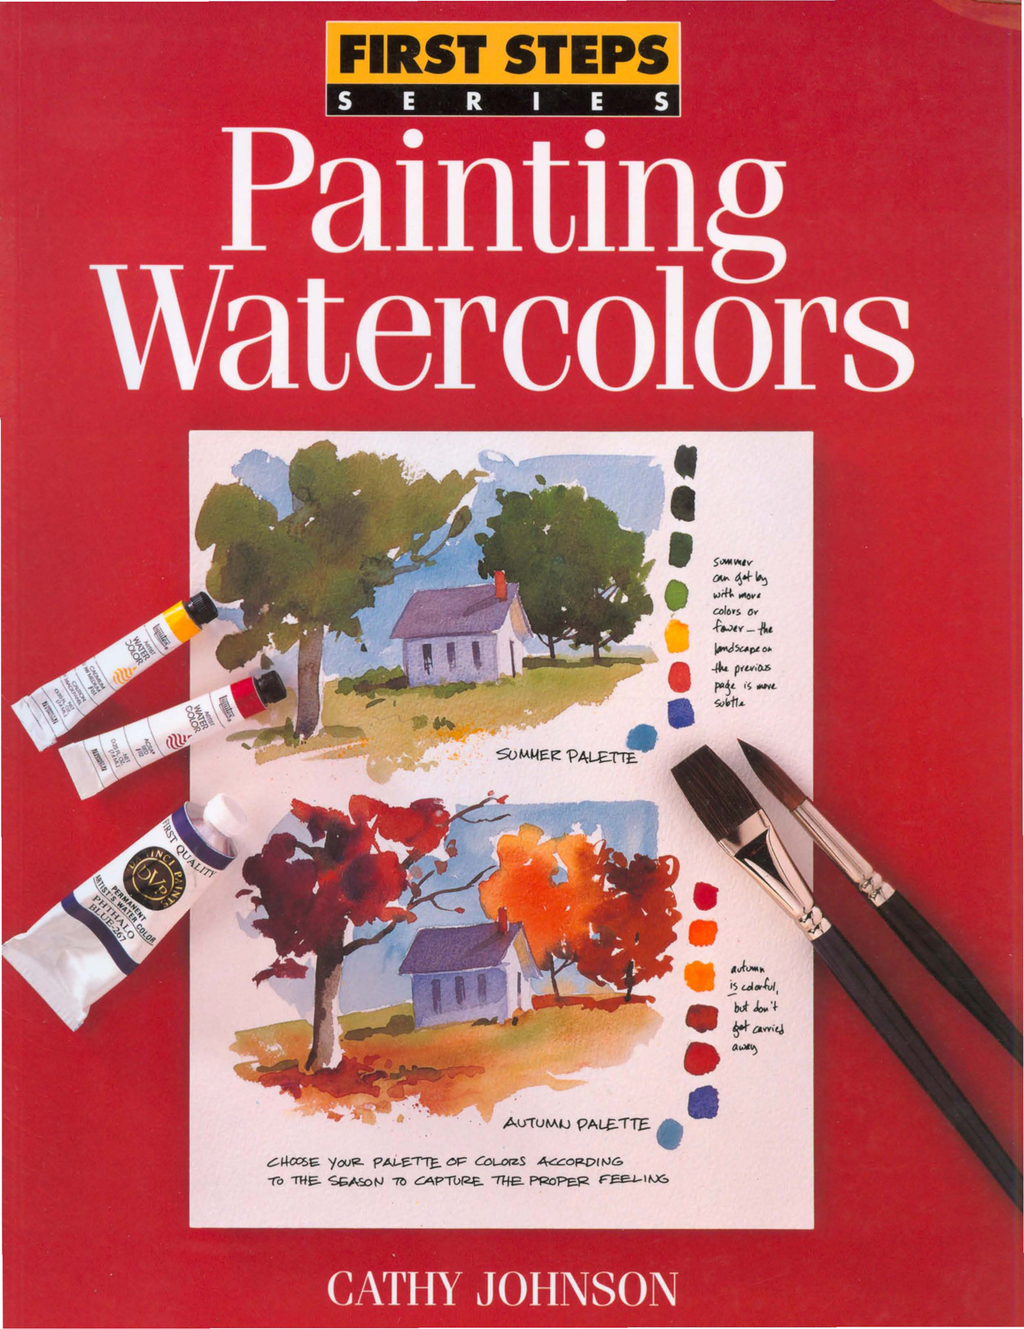 First Steps Painting Watercolors